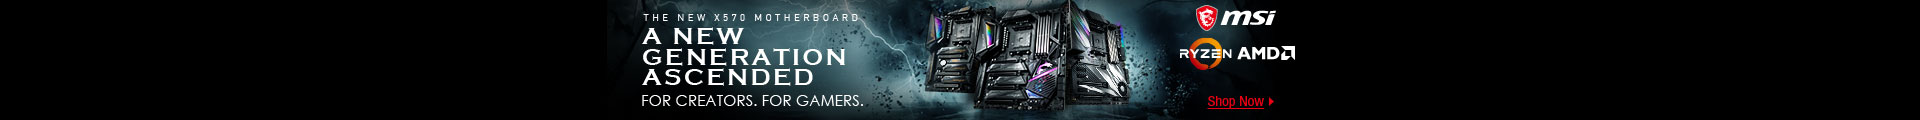 THE NEW X570 MOTHERBOARD